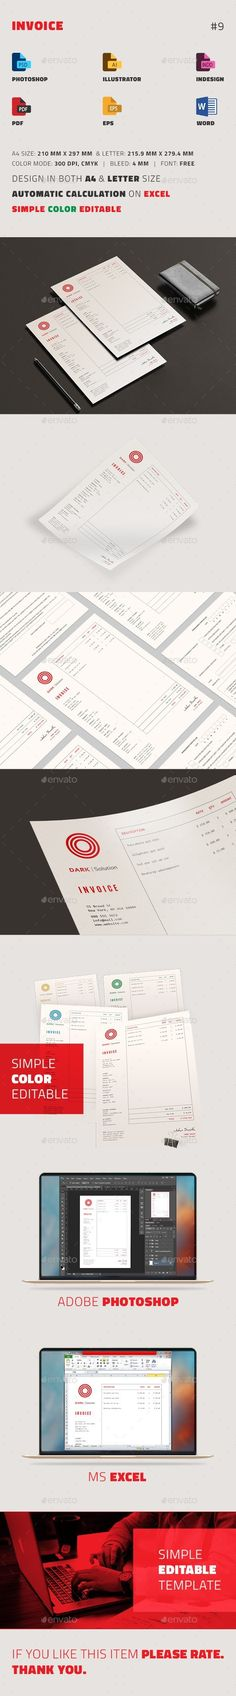 Business Invoice Templates V  Template Business And Buy Business